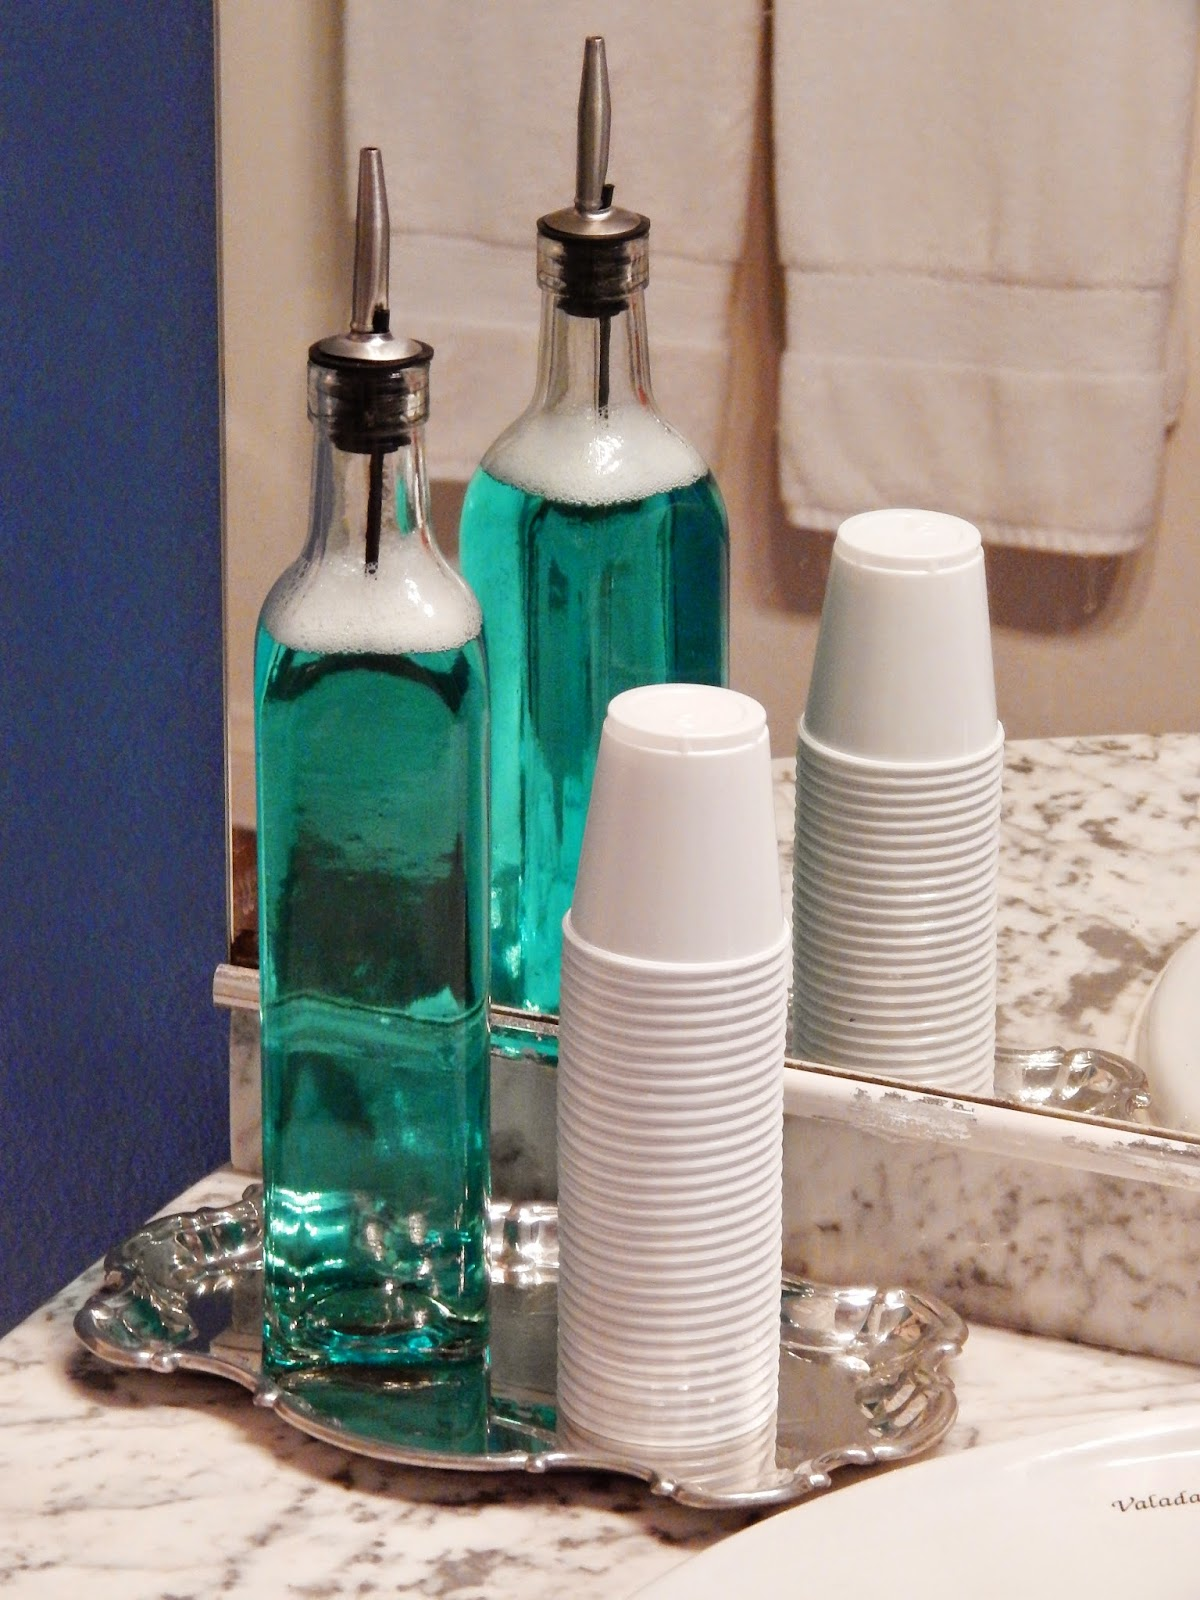 Elegant Mouthwash Bottle